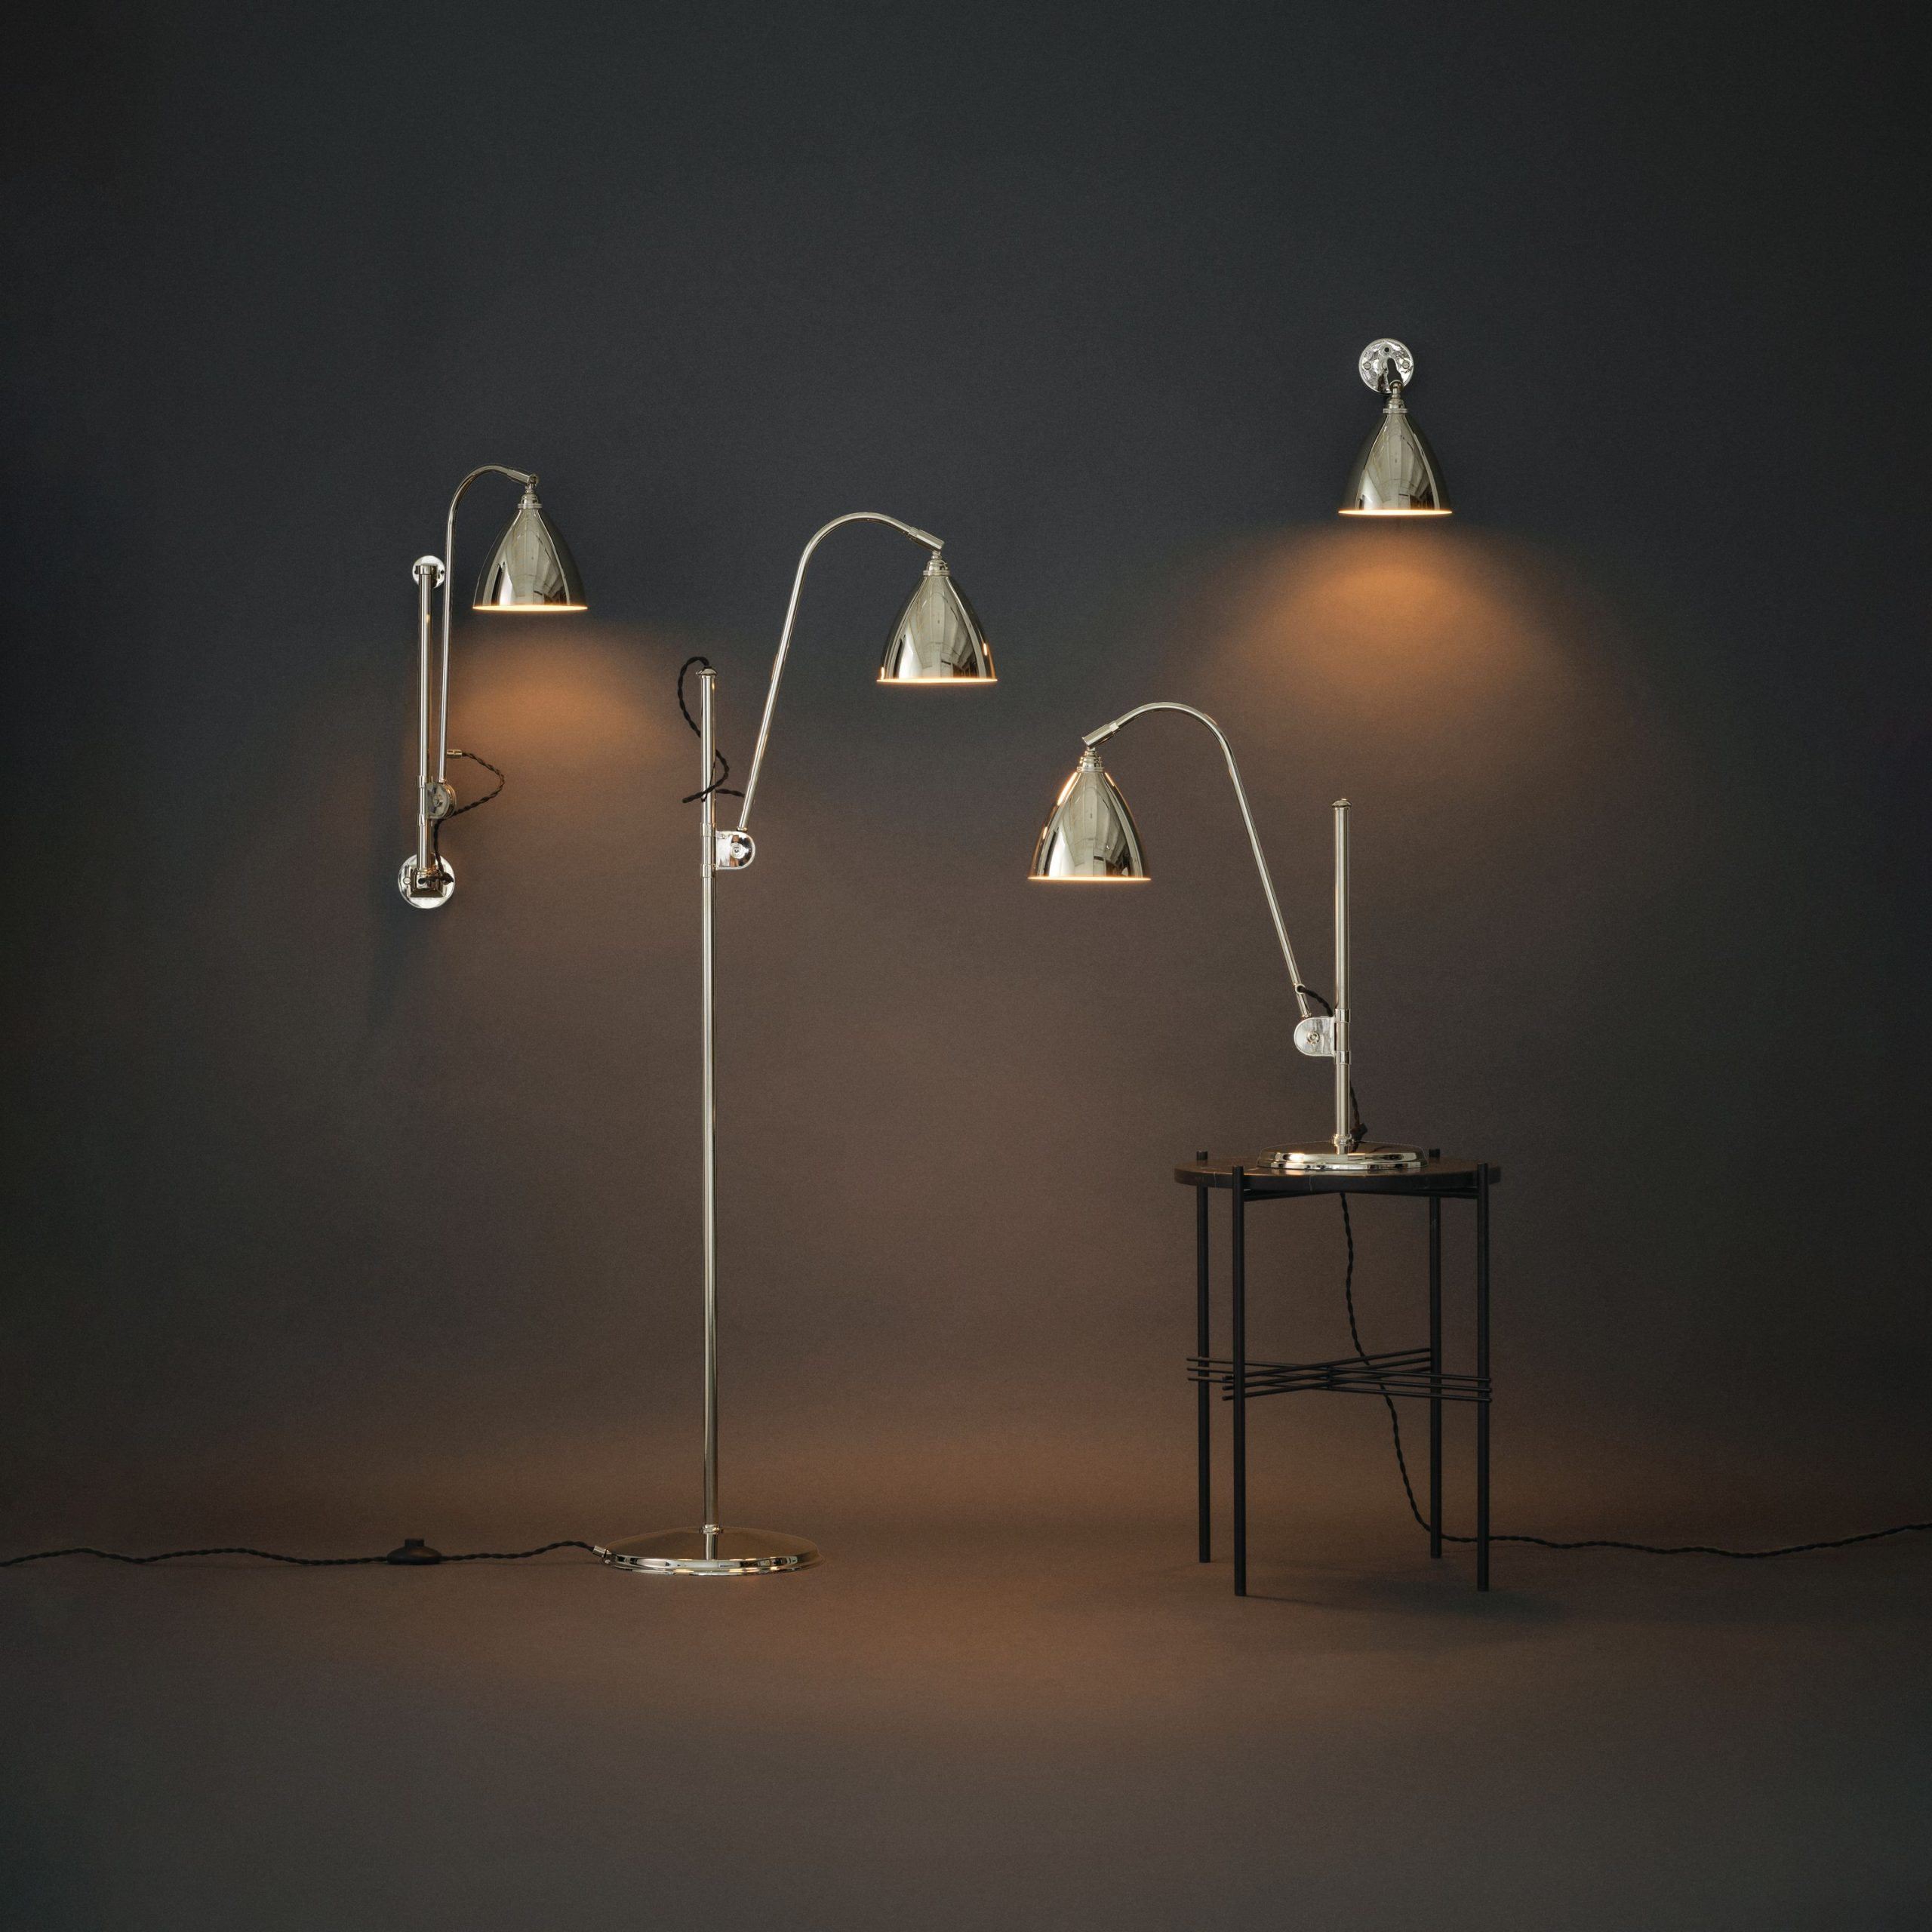 Bestlite 90th anniversary collection of lamps